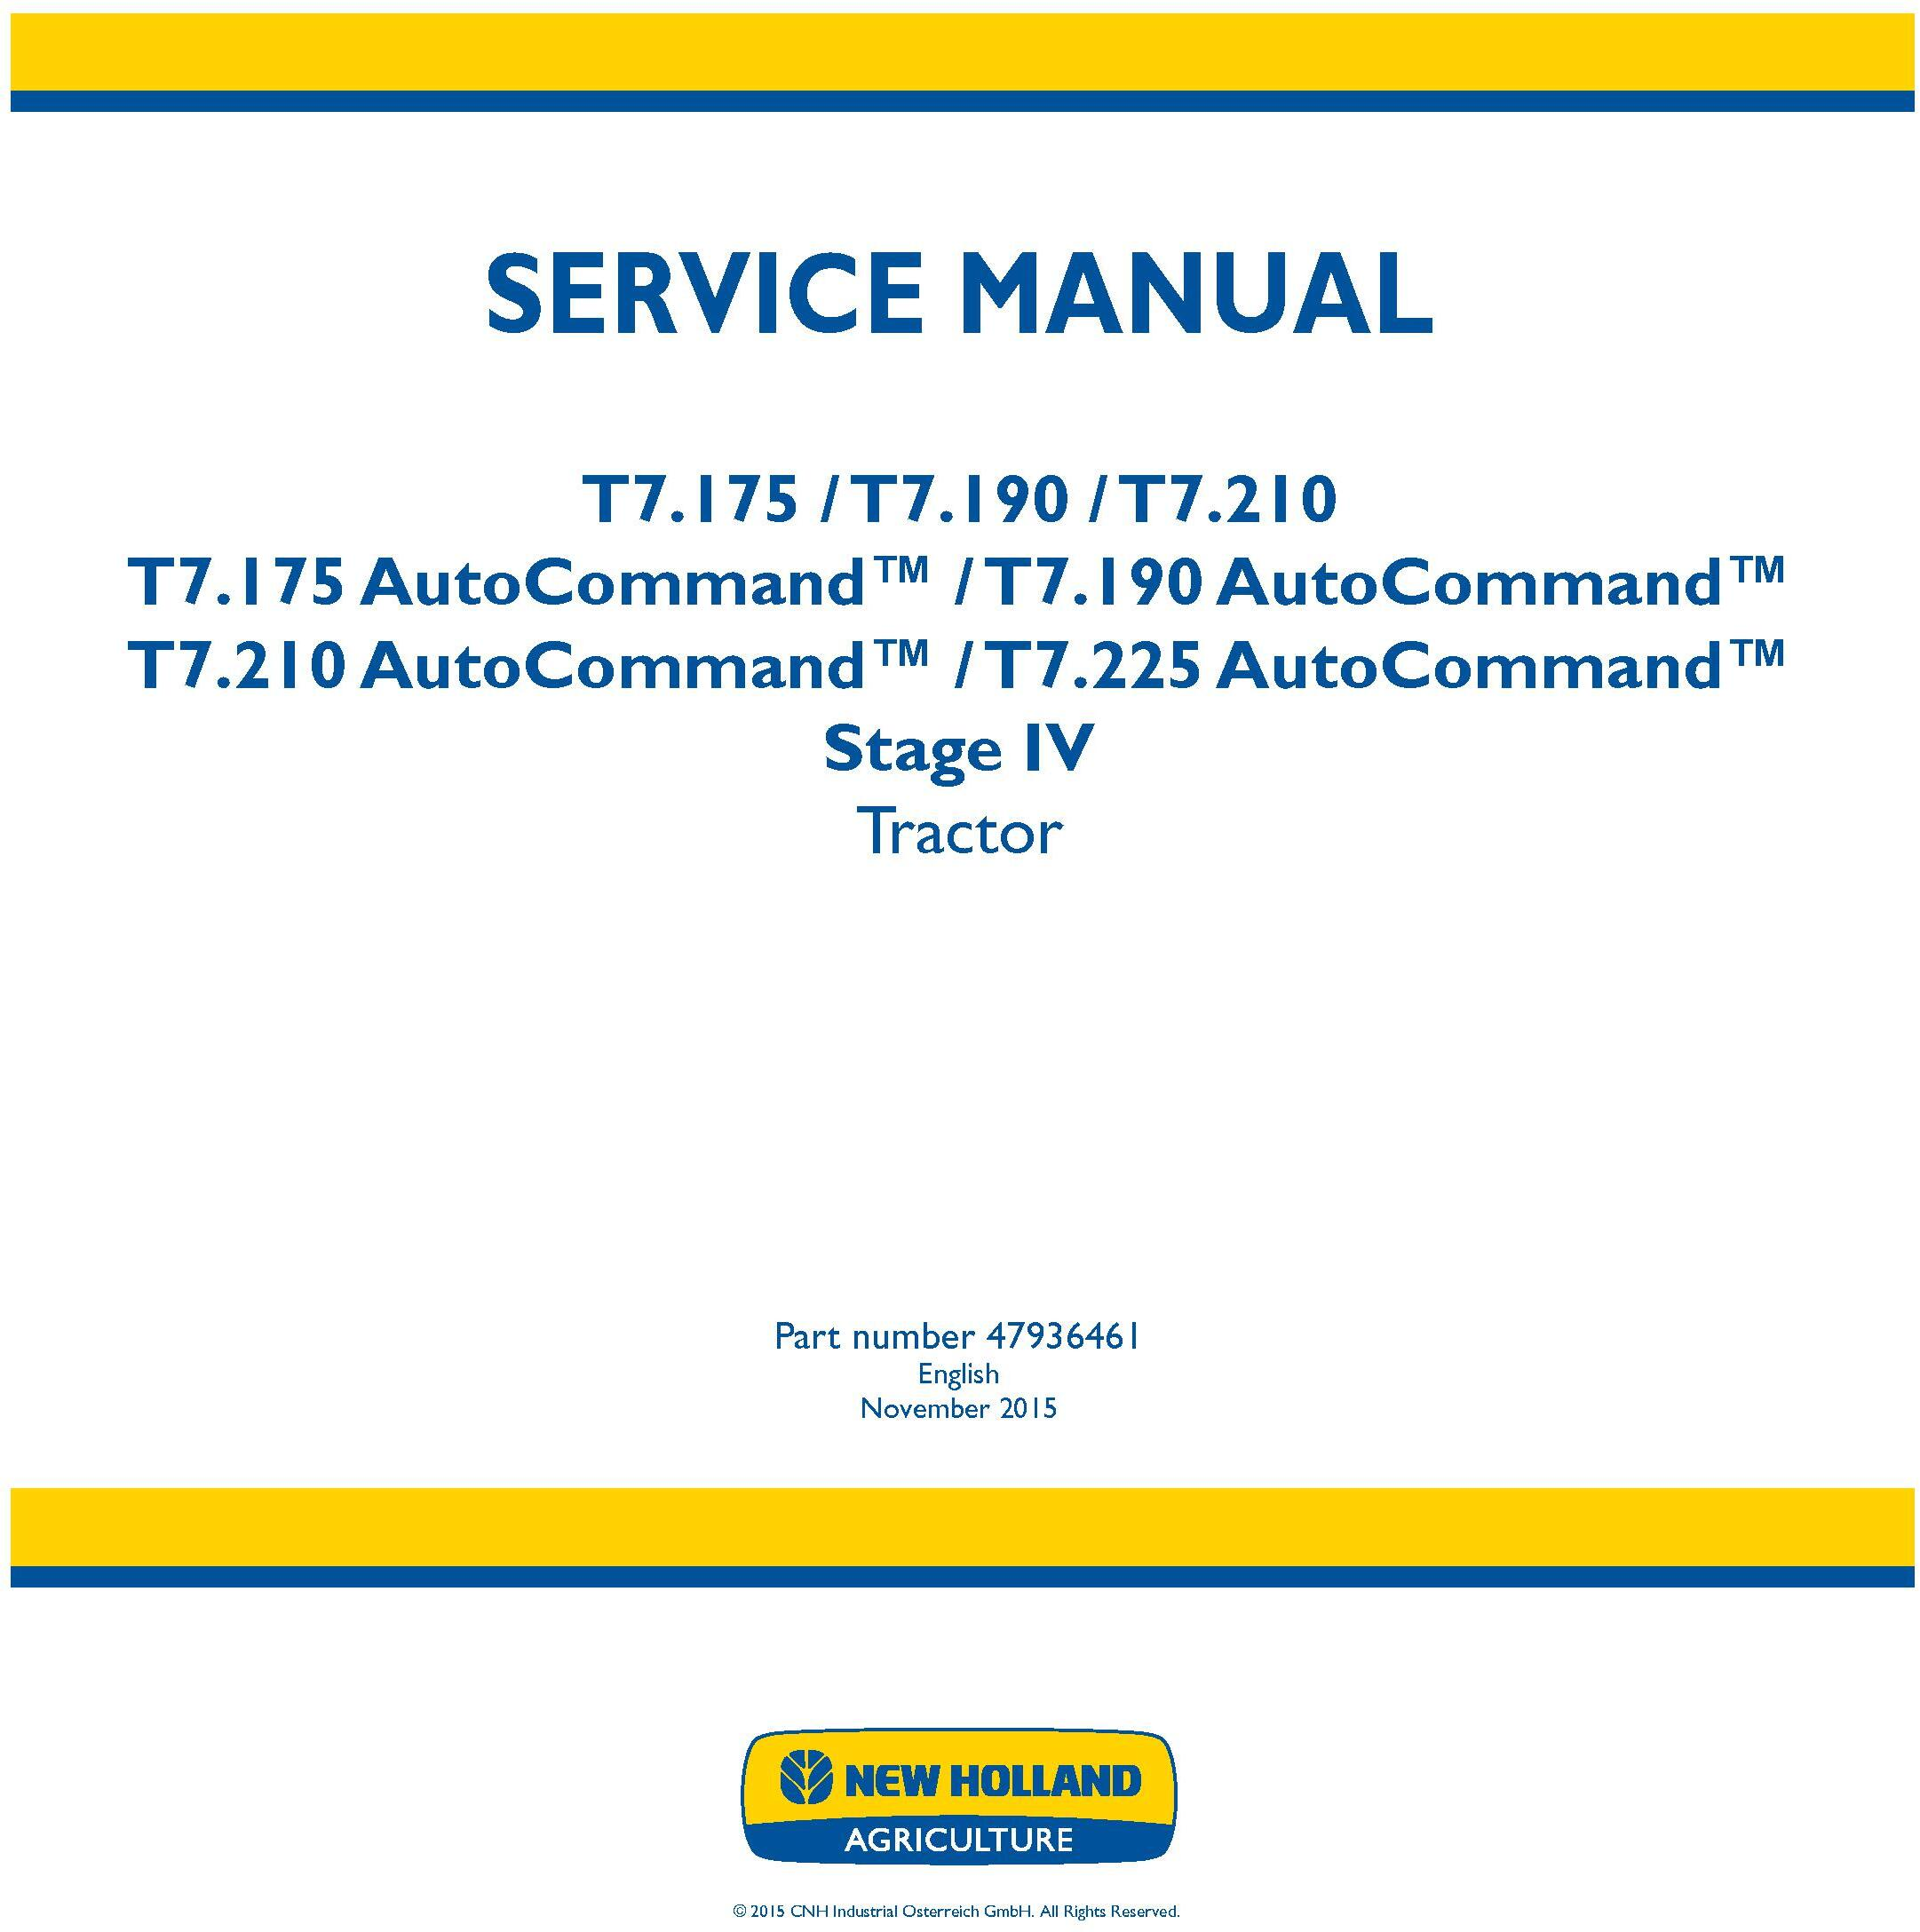 New Holland T7.175, T7.190, T7.210, T7.225 Auto Command Stage IV Tractors Service Manual (Europe) - 19466